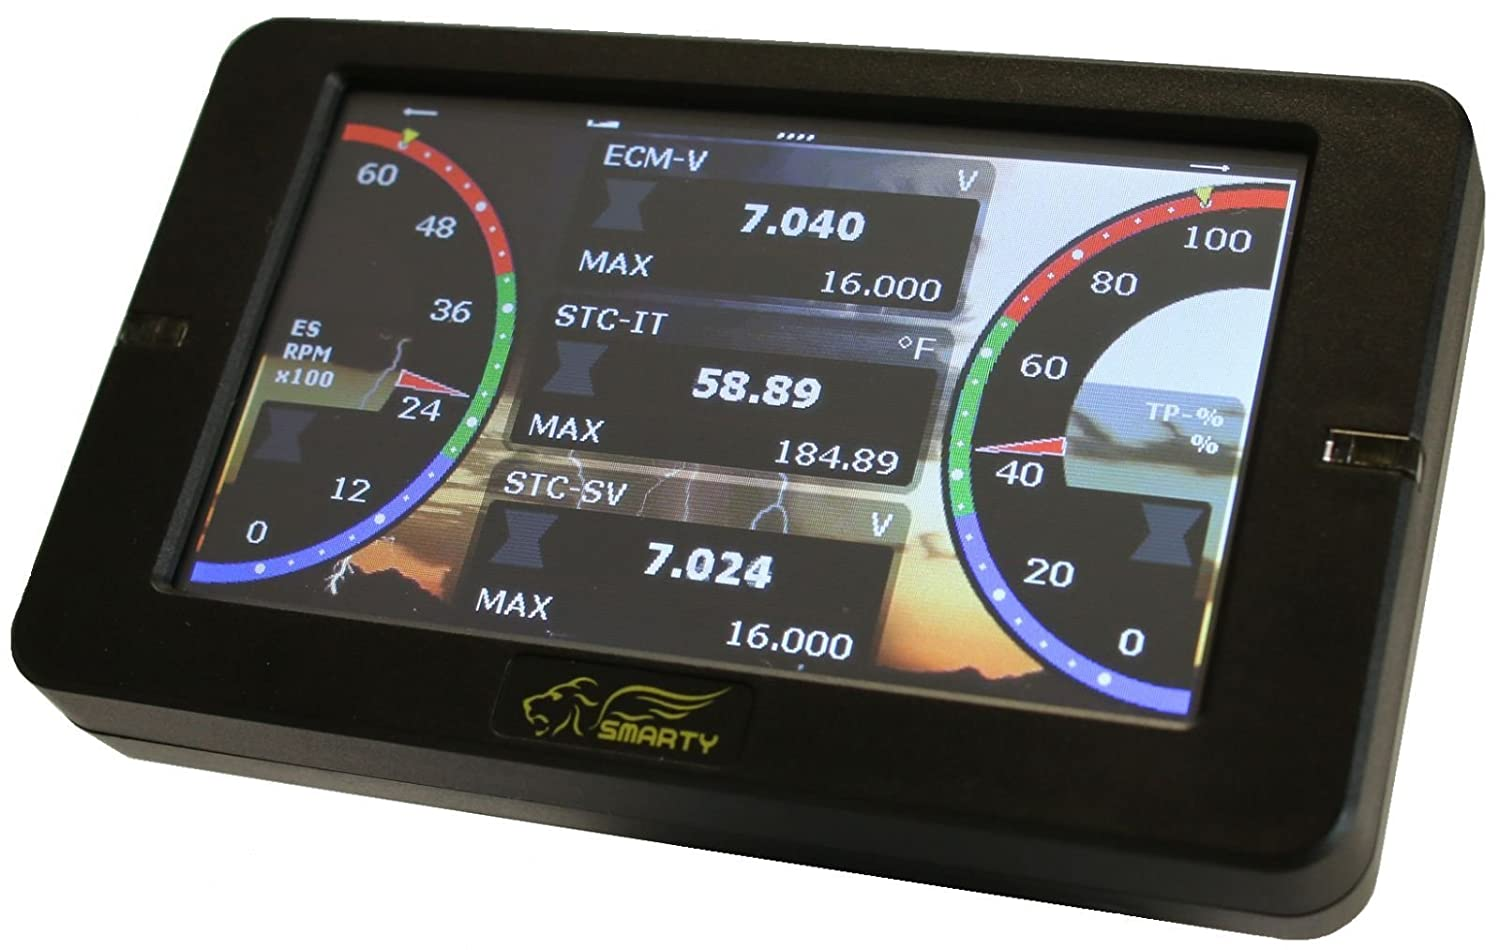 MADS Smarty Touch Programmer S2G - Dodge Cummins Turbo Diesel Trucks - 1998.5-2012 5.9L 6.7L Mads Electronic